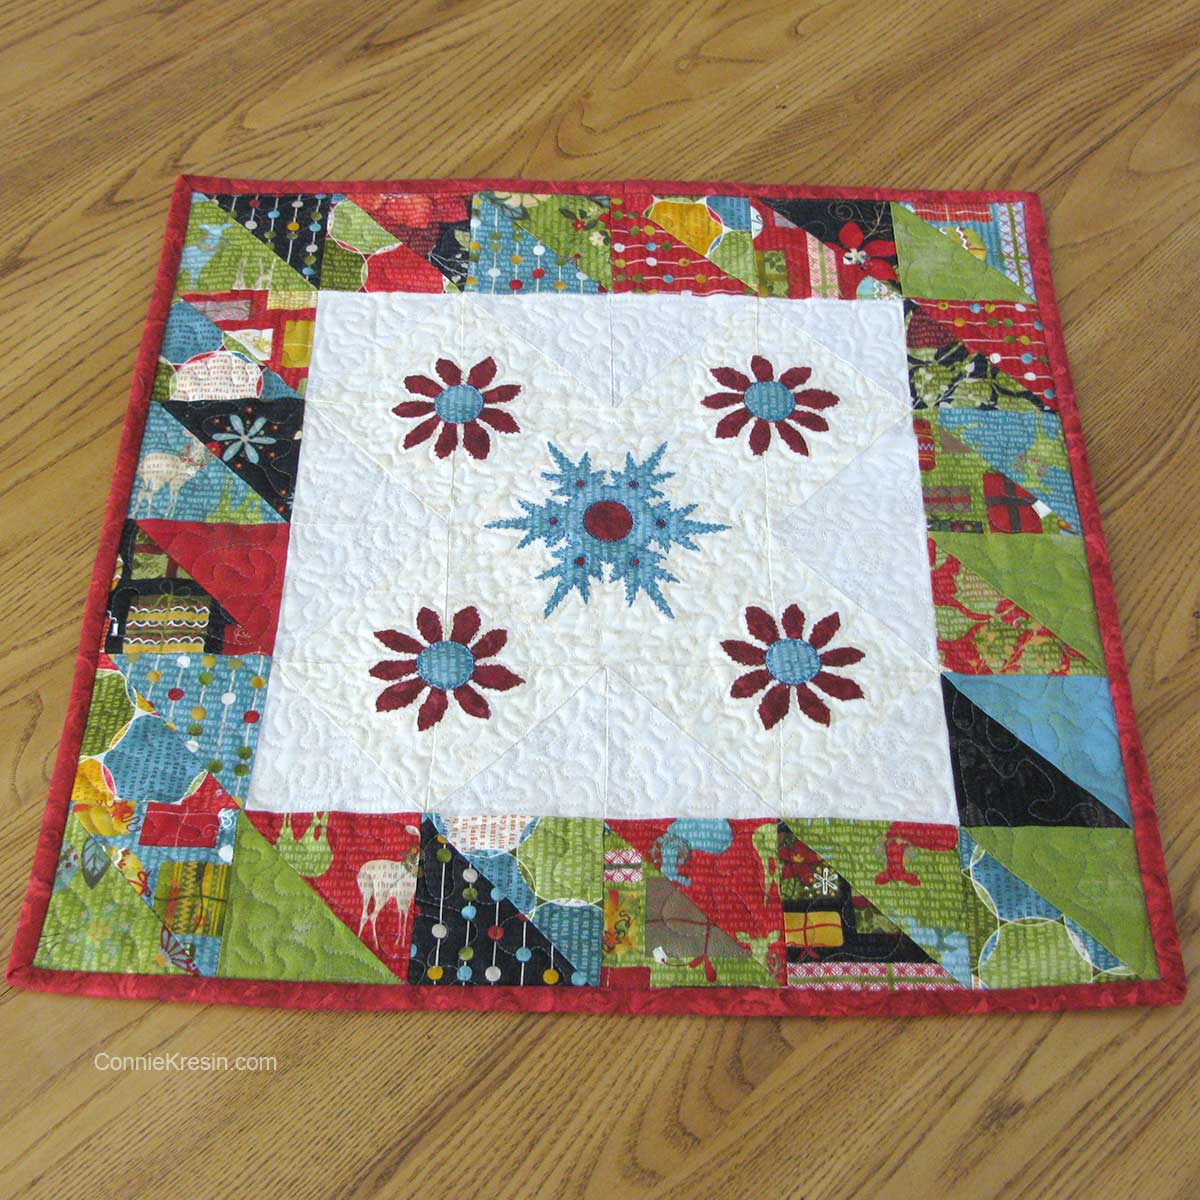 Winter Snowflake quilted applique center piece